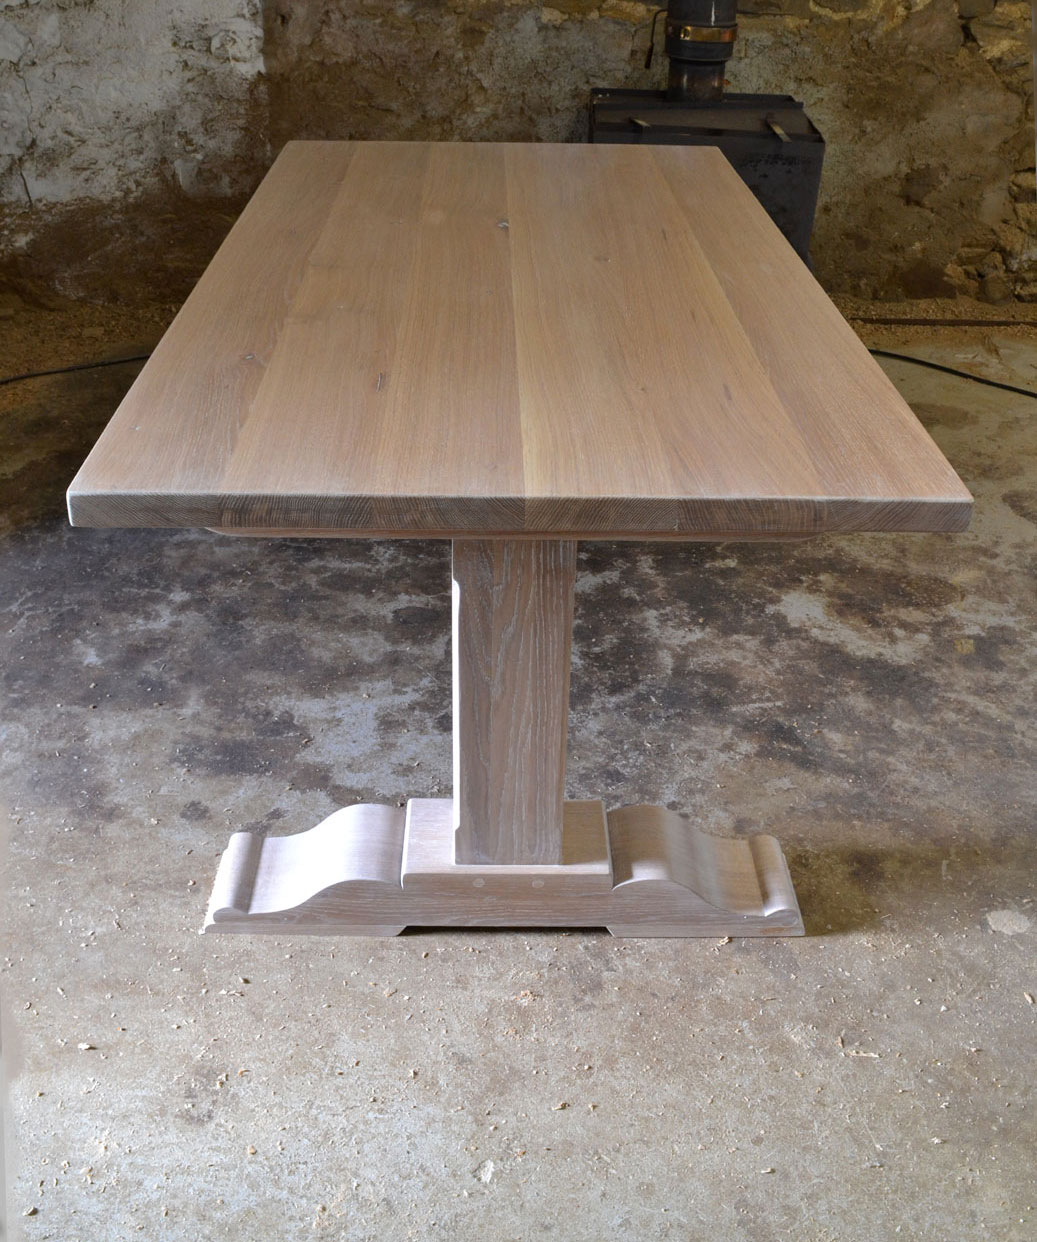 Oak table finishes with Isoguard chalked oak treatment oil